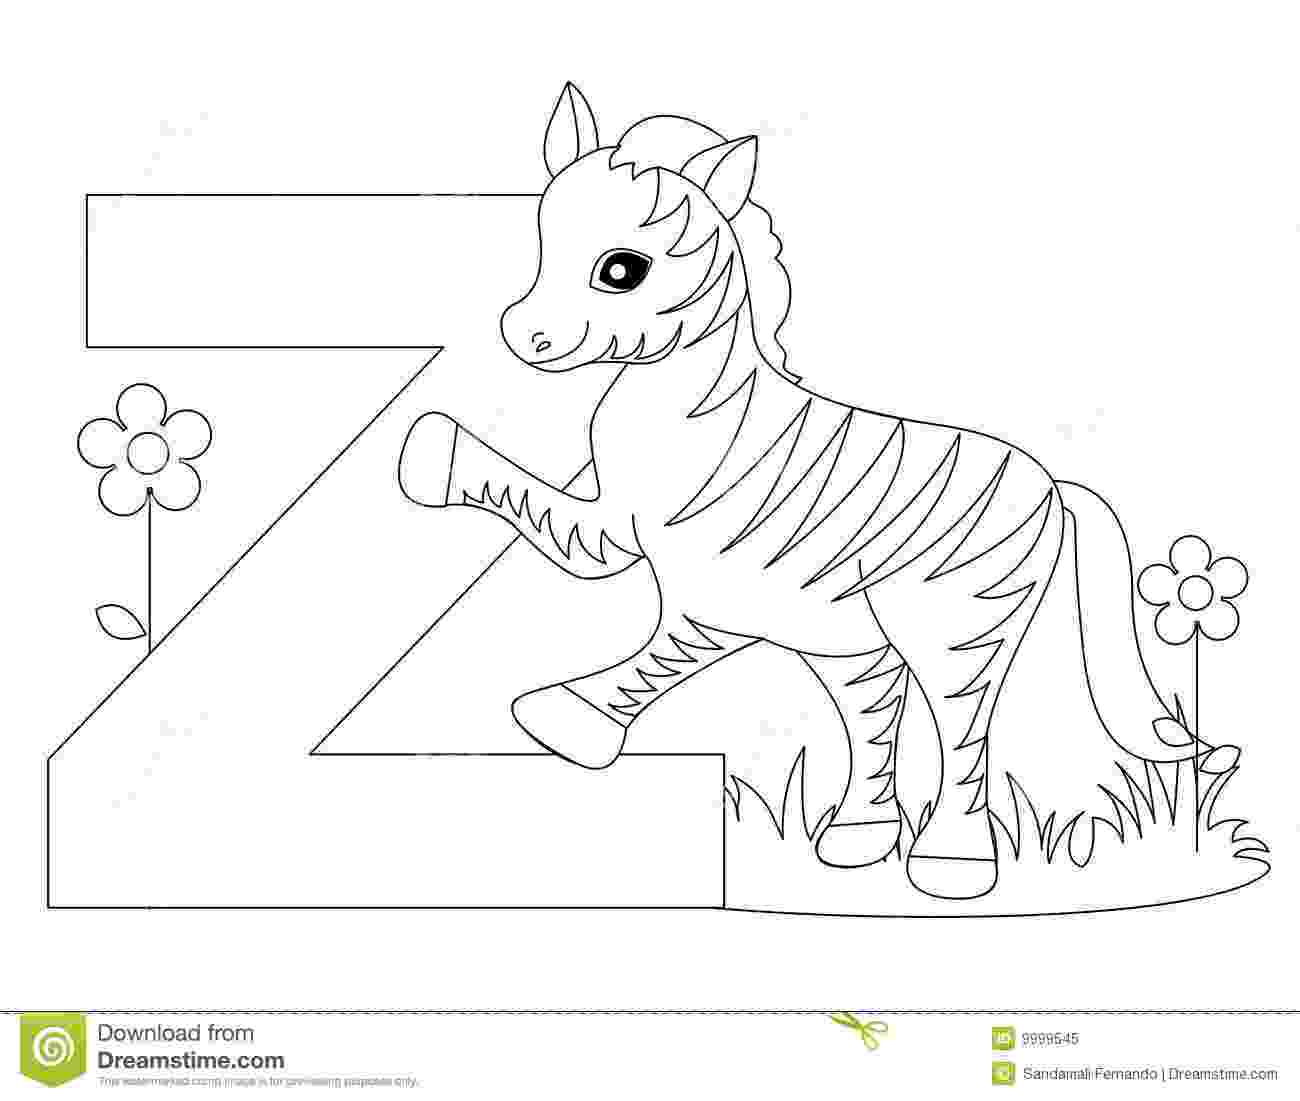 letter t animal coloring pages letter y coloring pages printable for preschoolers animal coloring t letter pages